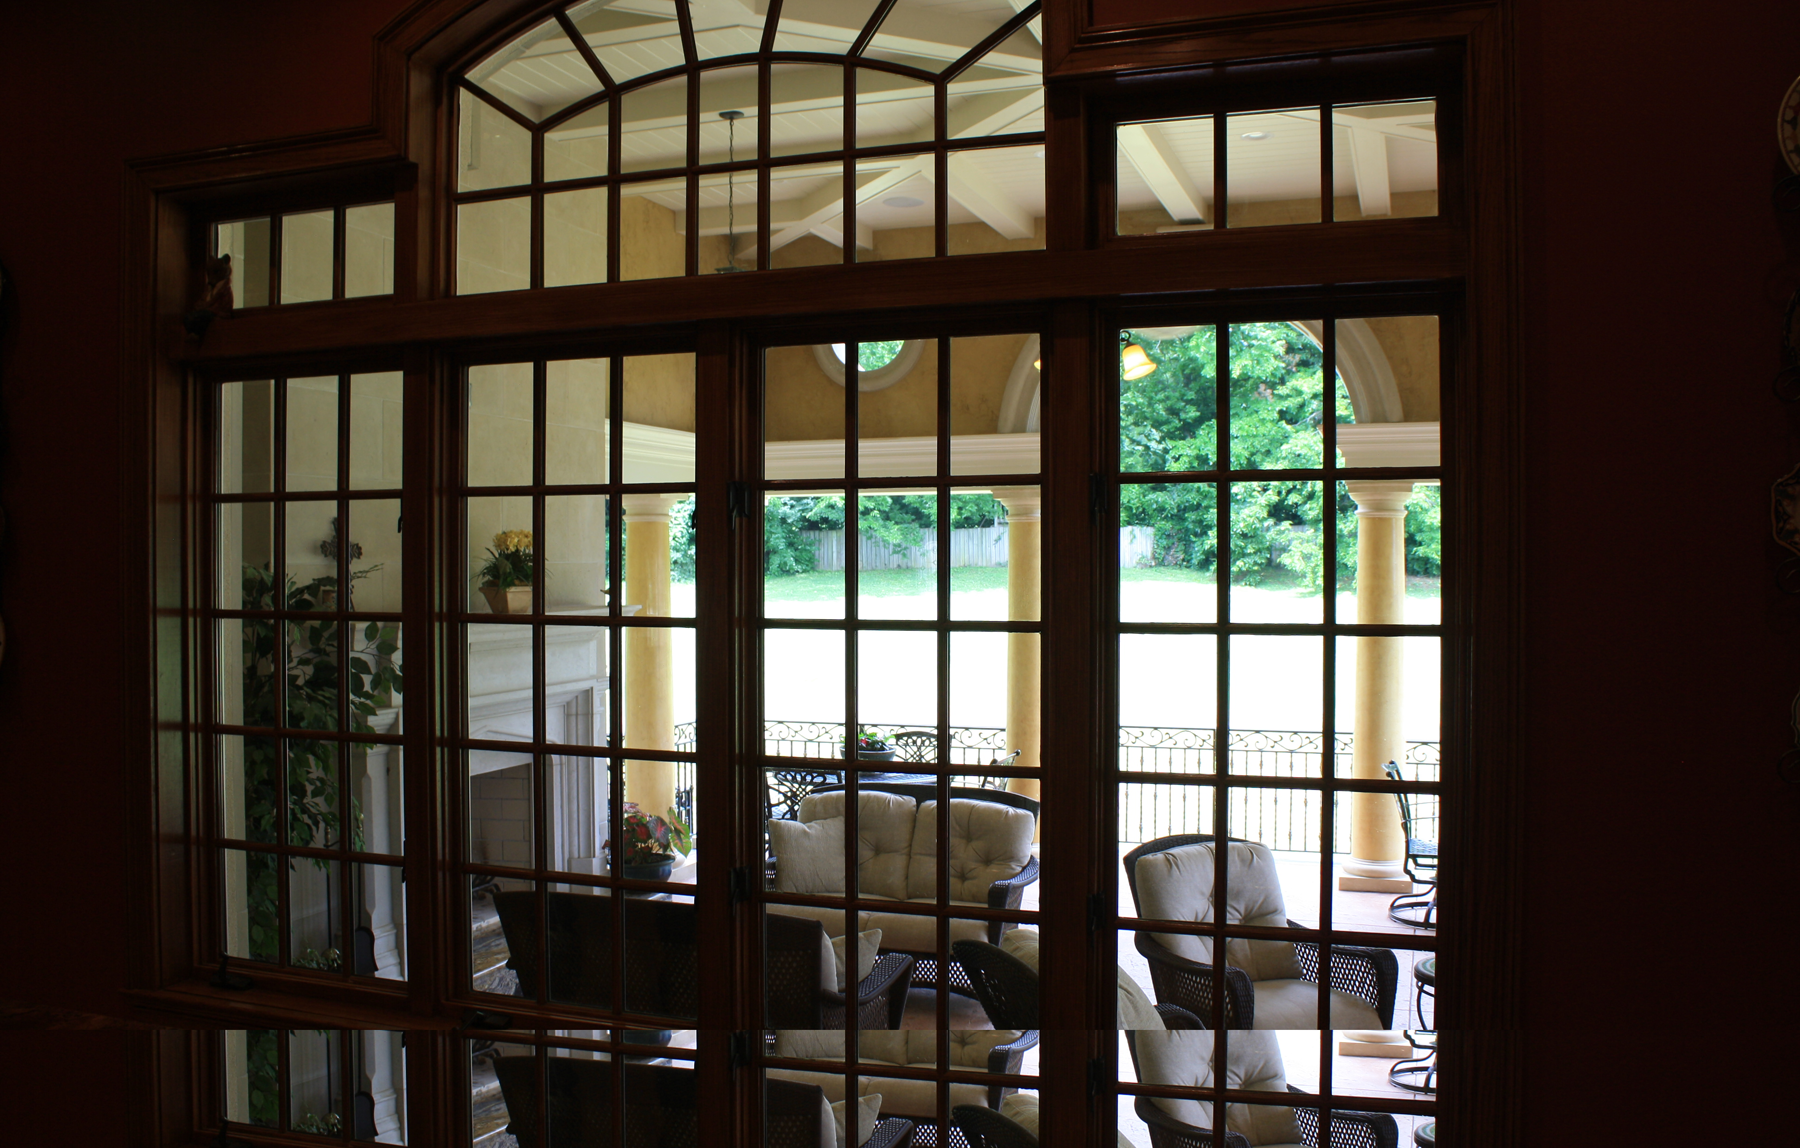 Custom designed loggia:  Venetian plaster columns with faux stone capitals and base and upper wall O'villa plaster finish.